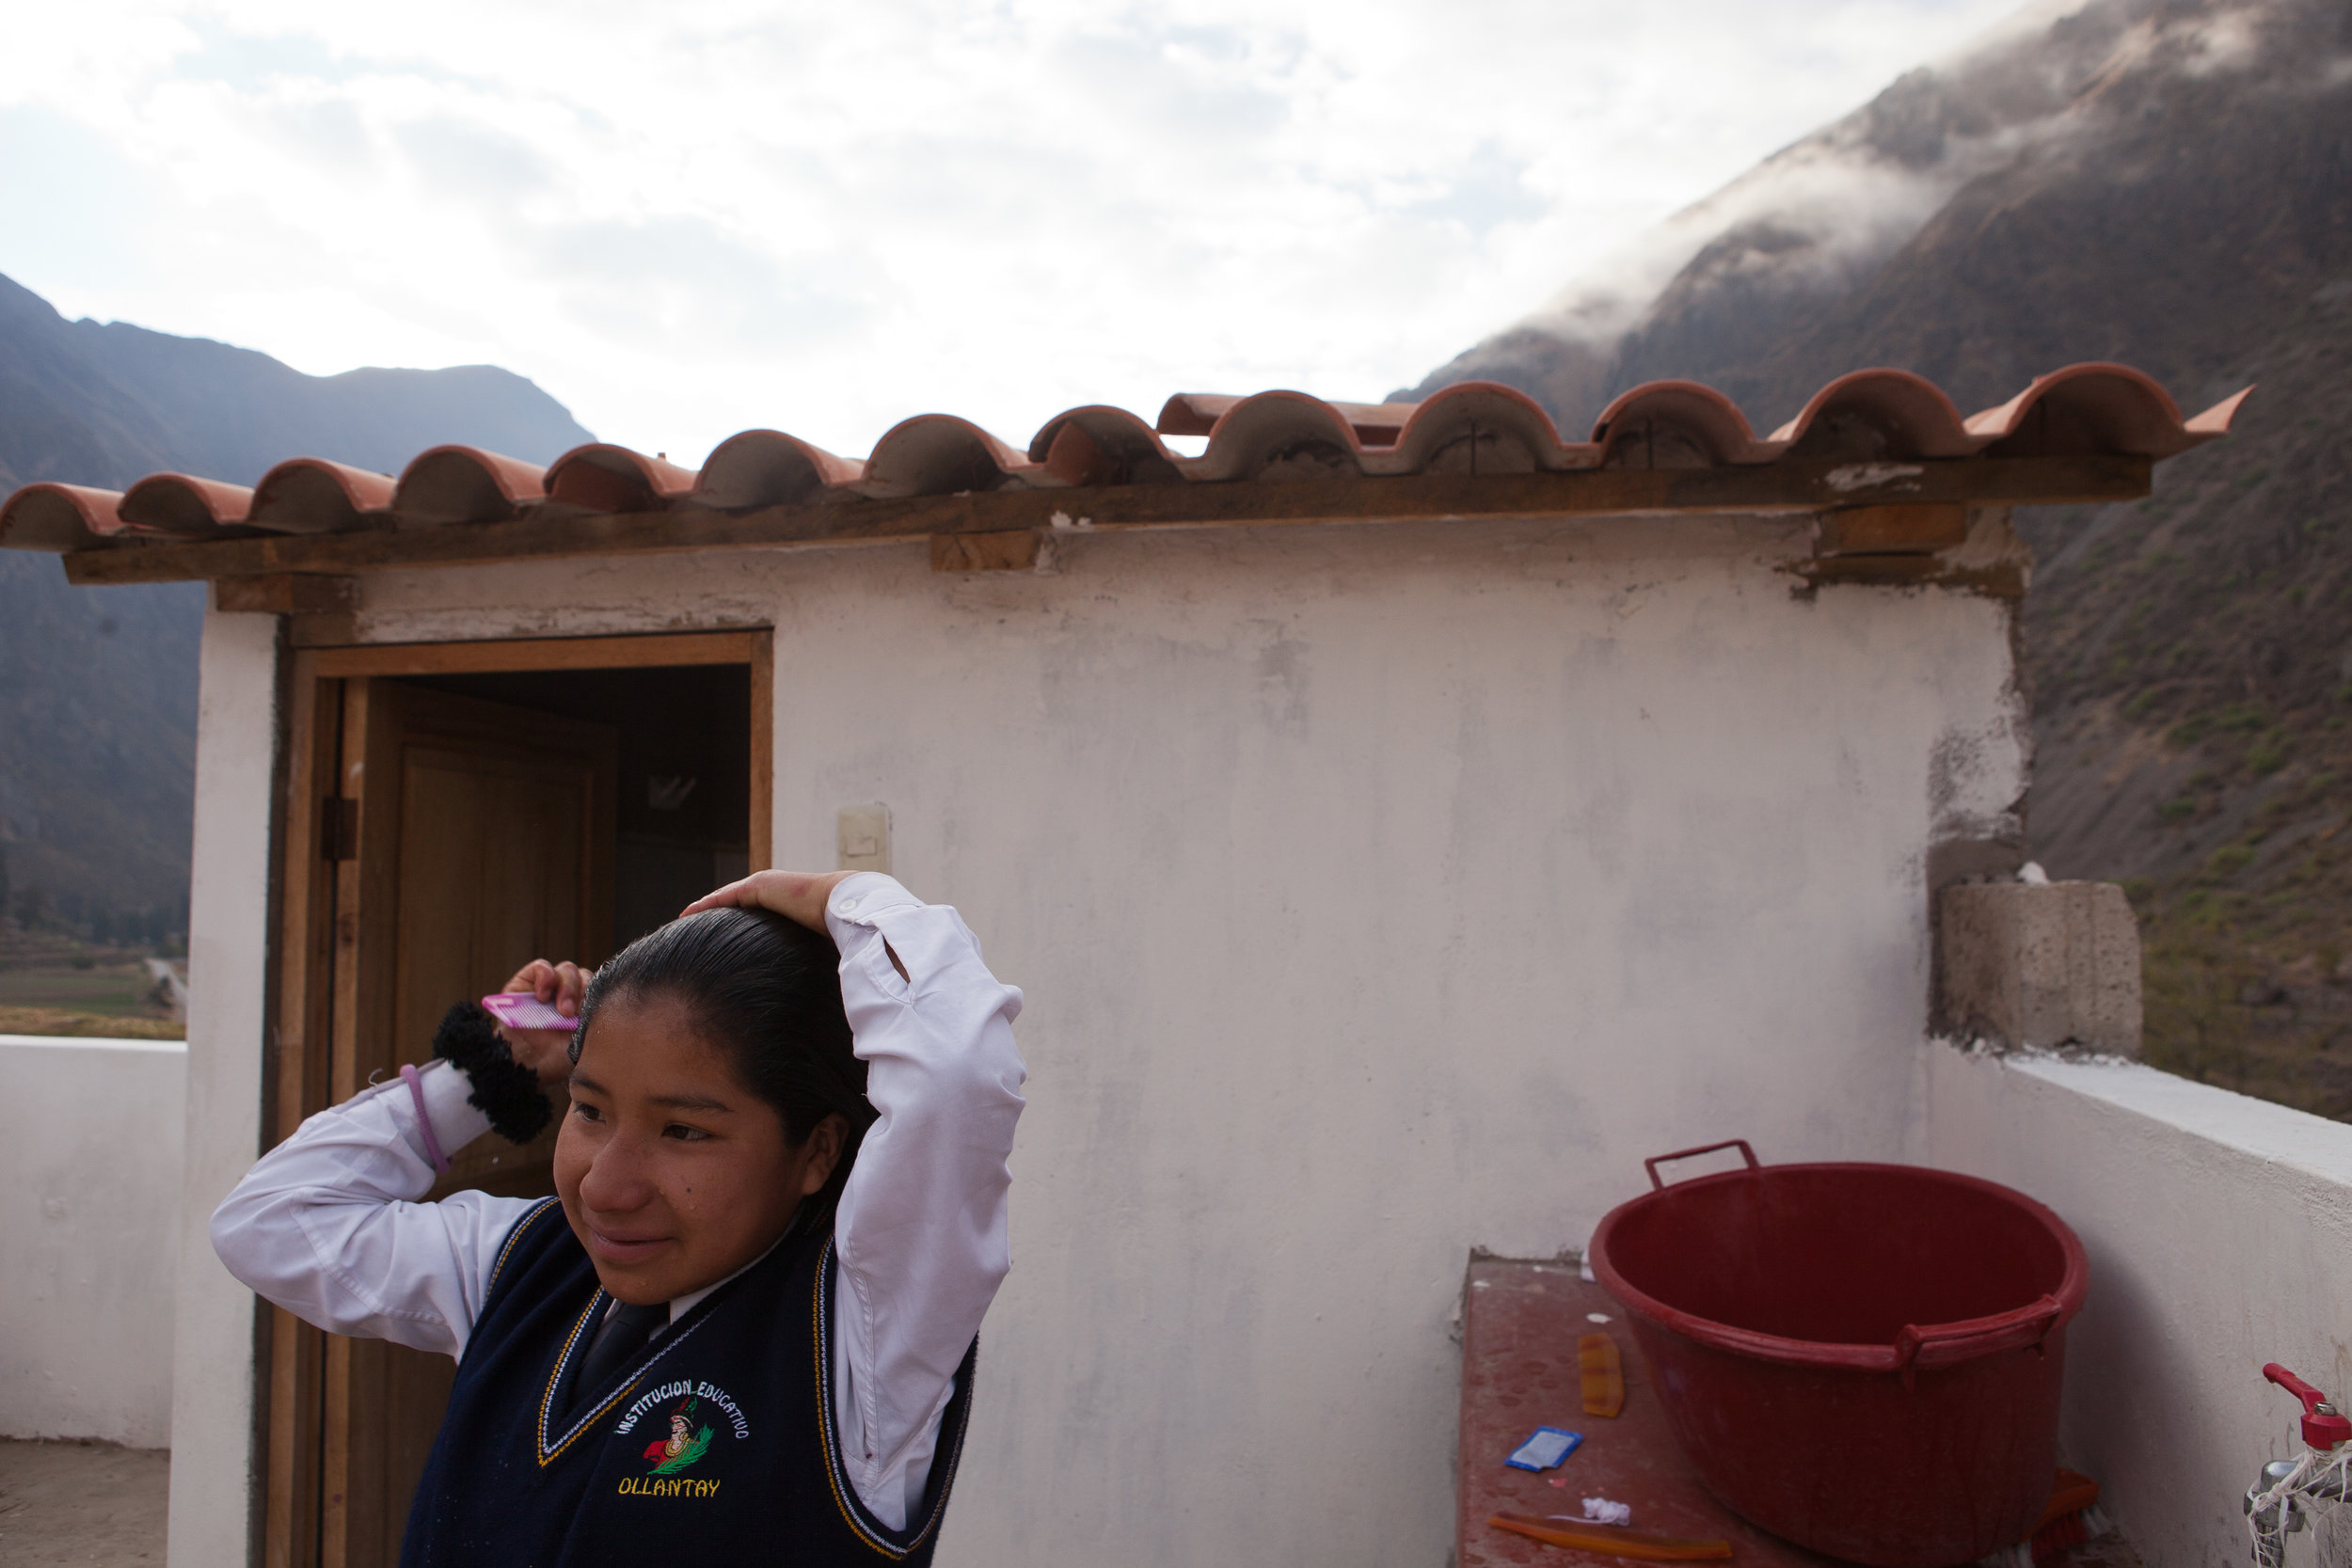 5:30am: Elizabeth wakes up and starts her day. Here, she combs her hair outside the dormitory's upstairs bathroom. The fifteen girls manage to split two bathrooms among all of them! All of the girls' basic needs are supplied by the Sacred Valley Project, from their housing to their uniforms.